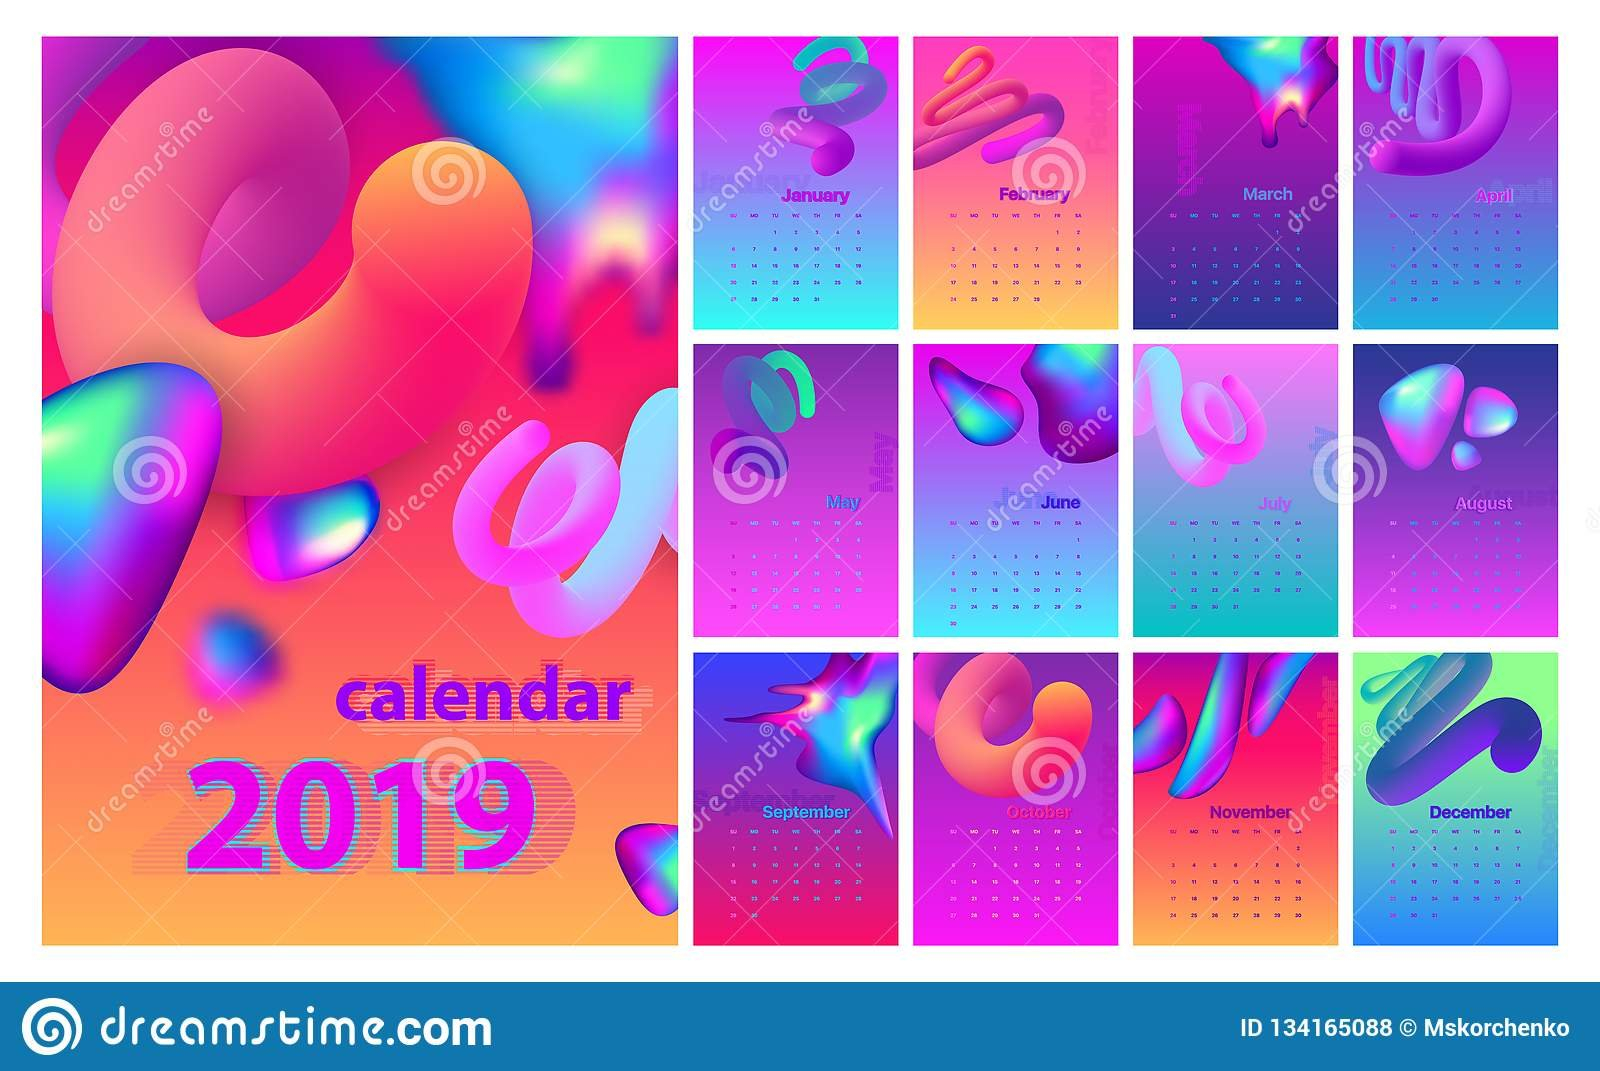 Abstract Minimal Calendar Design For 2019. Colorful Set. Stock Calendar 2019 Cool